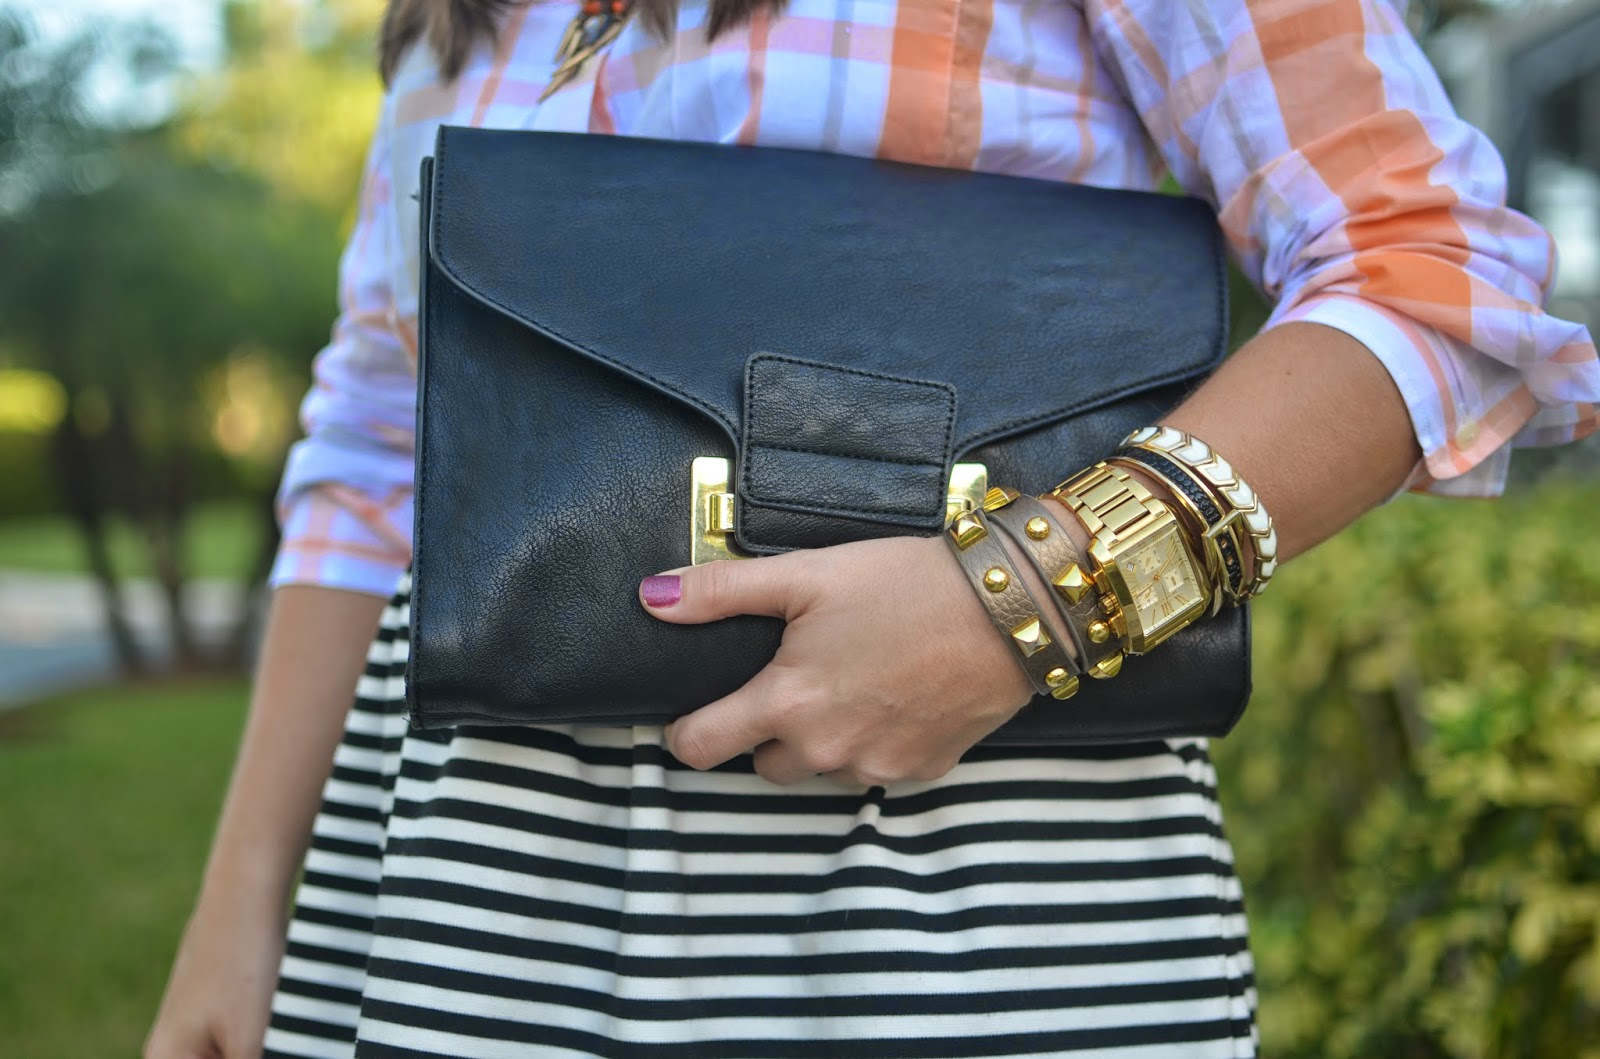 Stripe skirt - check shirt - black clutch - chunk heels - Emma & Sophia - statement jewelry